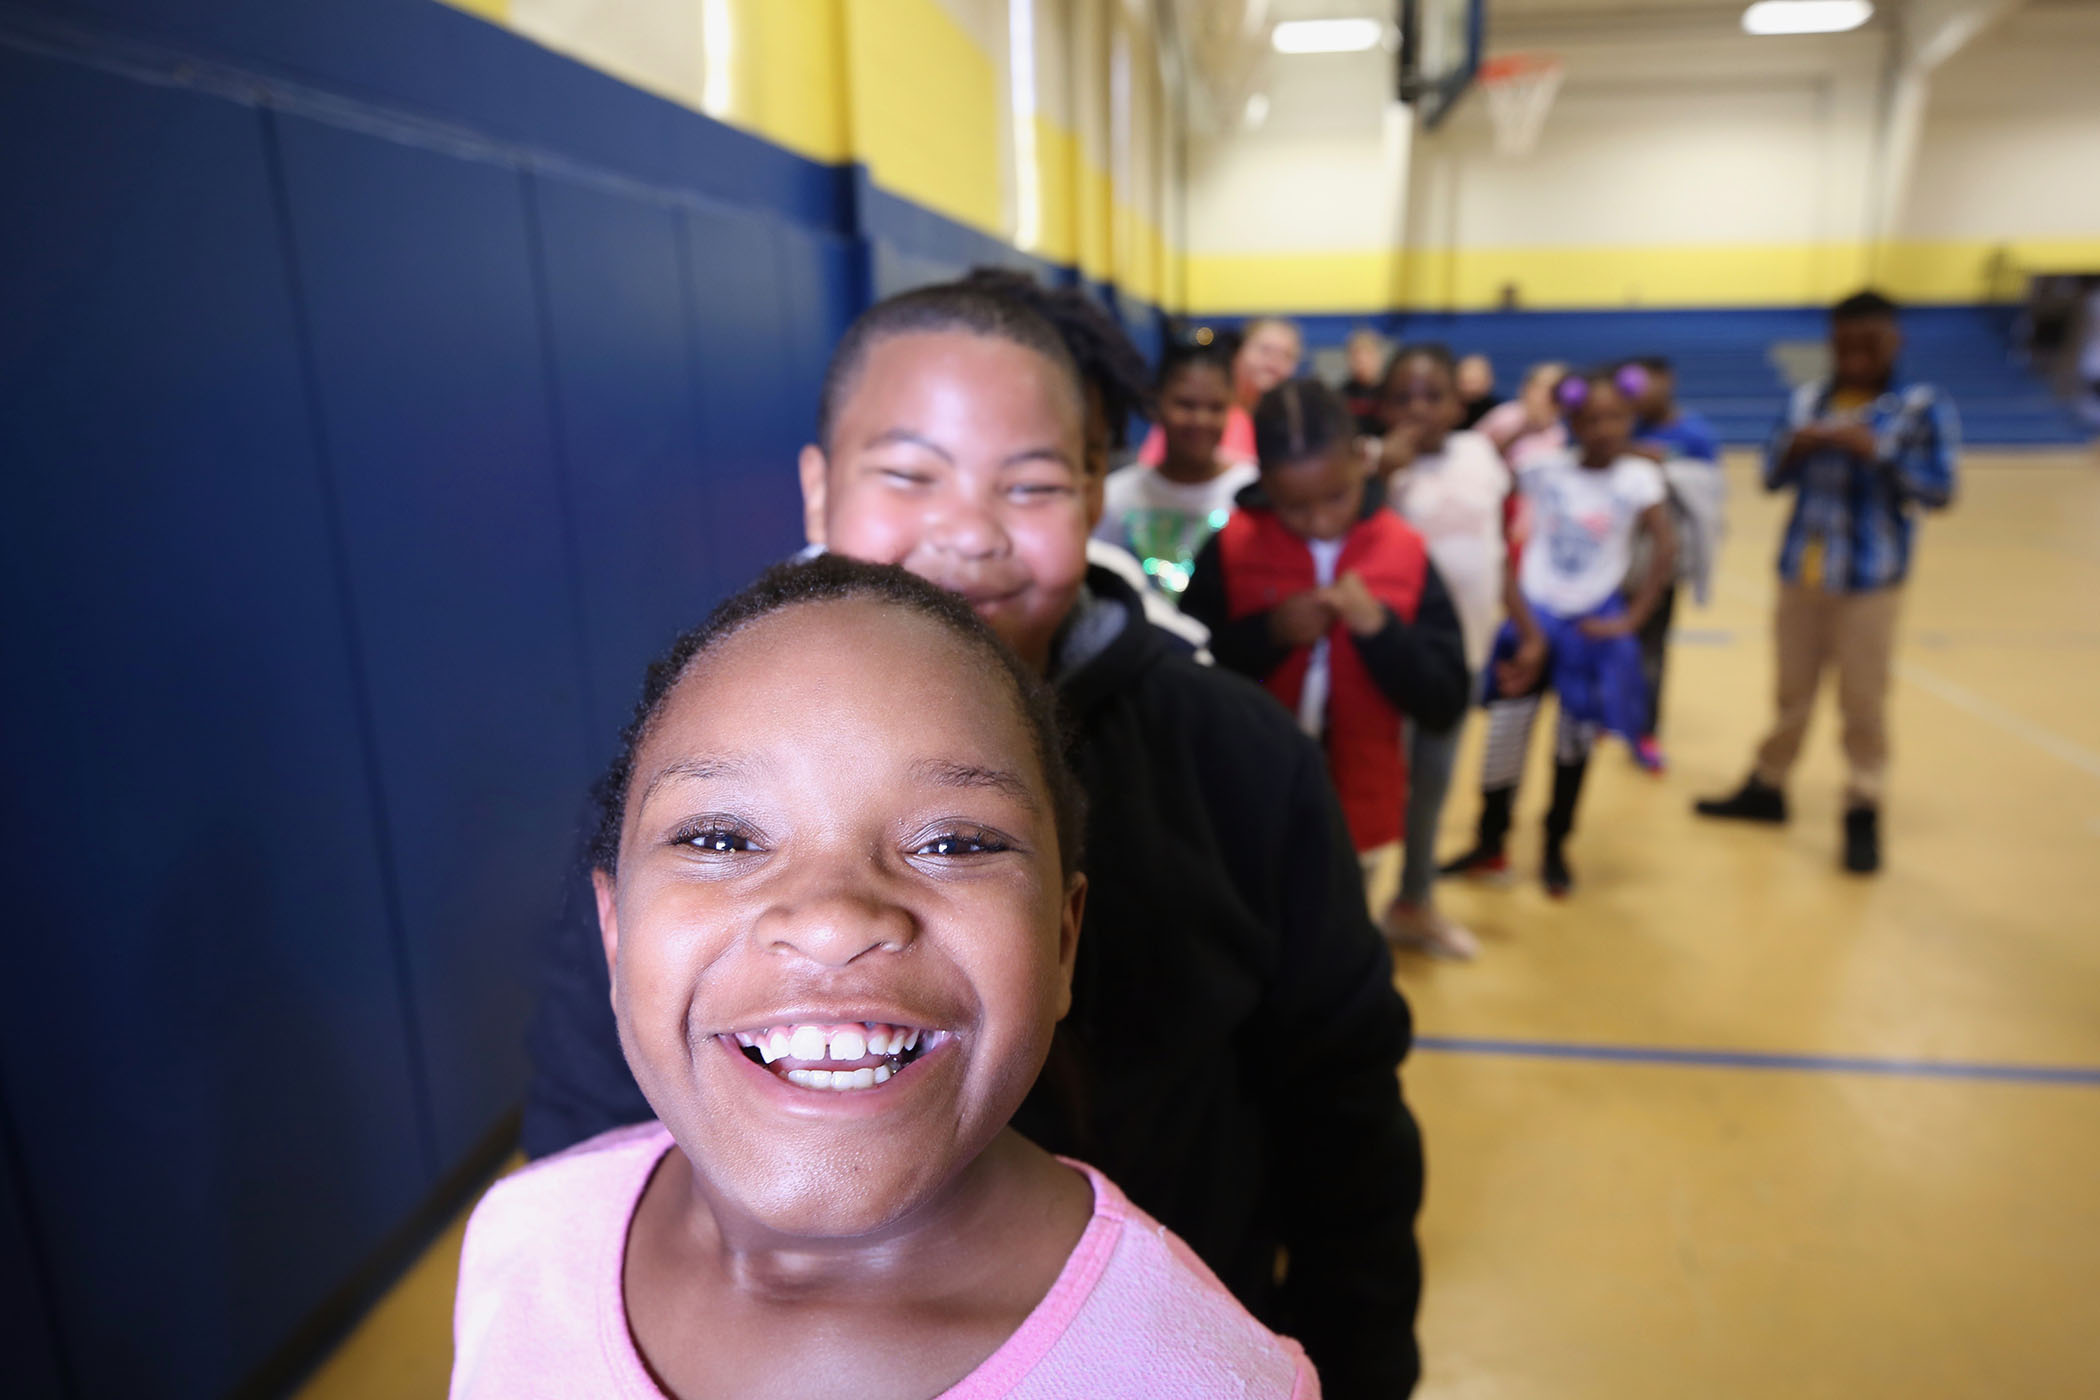 Students line up after enjoying a break in the school's gym.